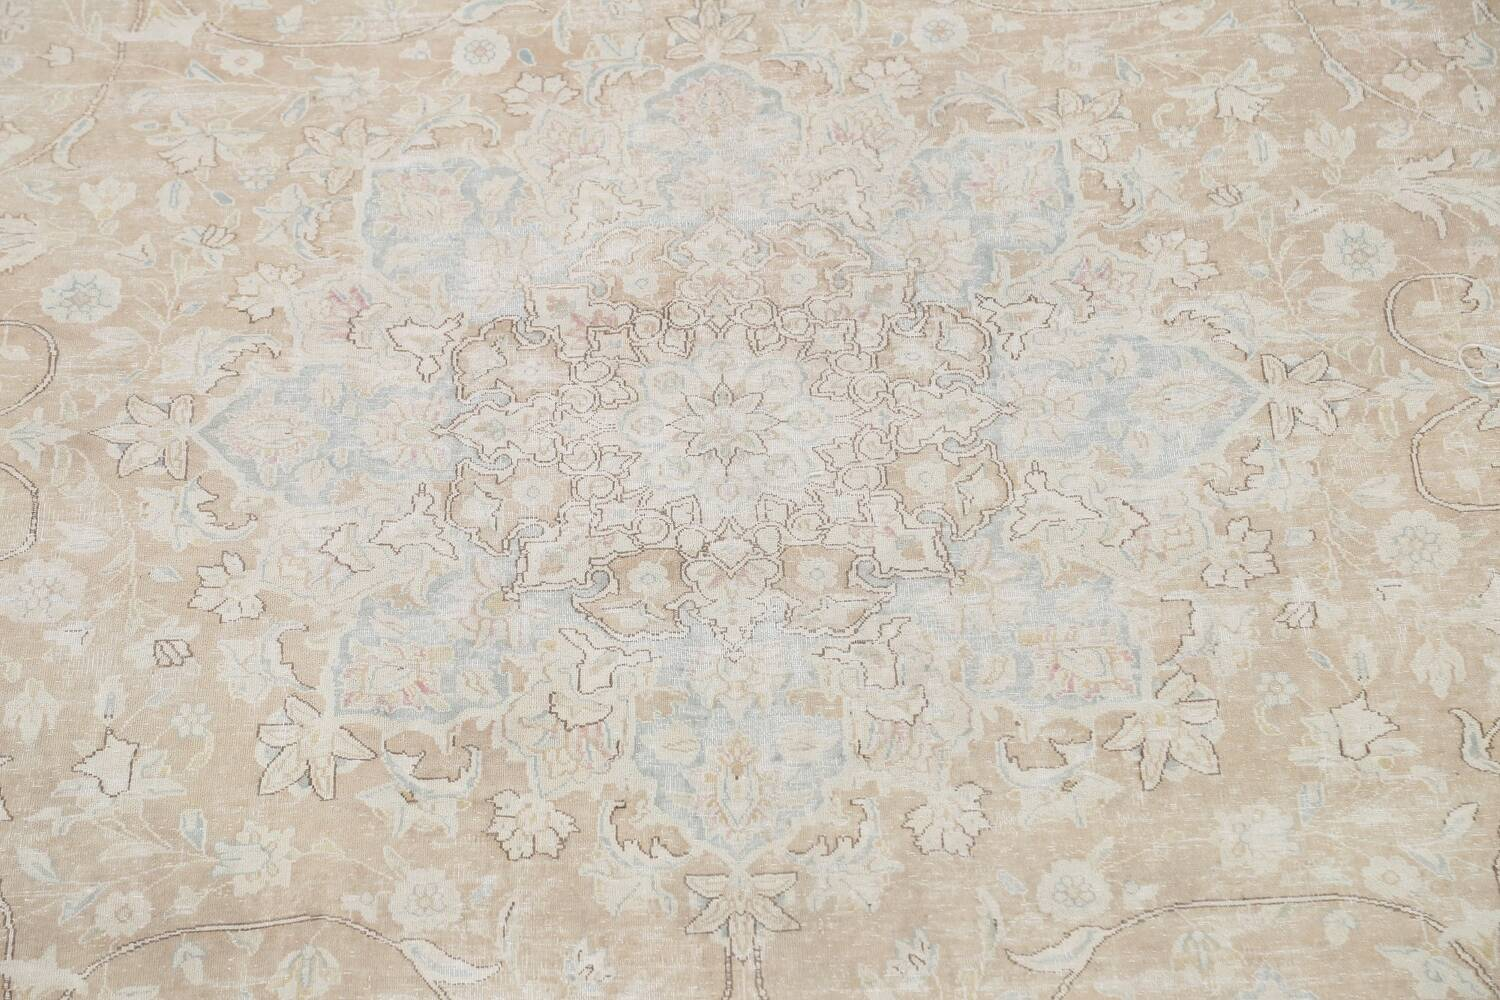 Muted Floral Kerman Persian Area Rug 10x13 image 4